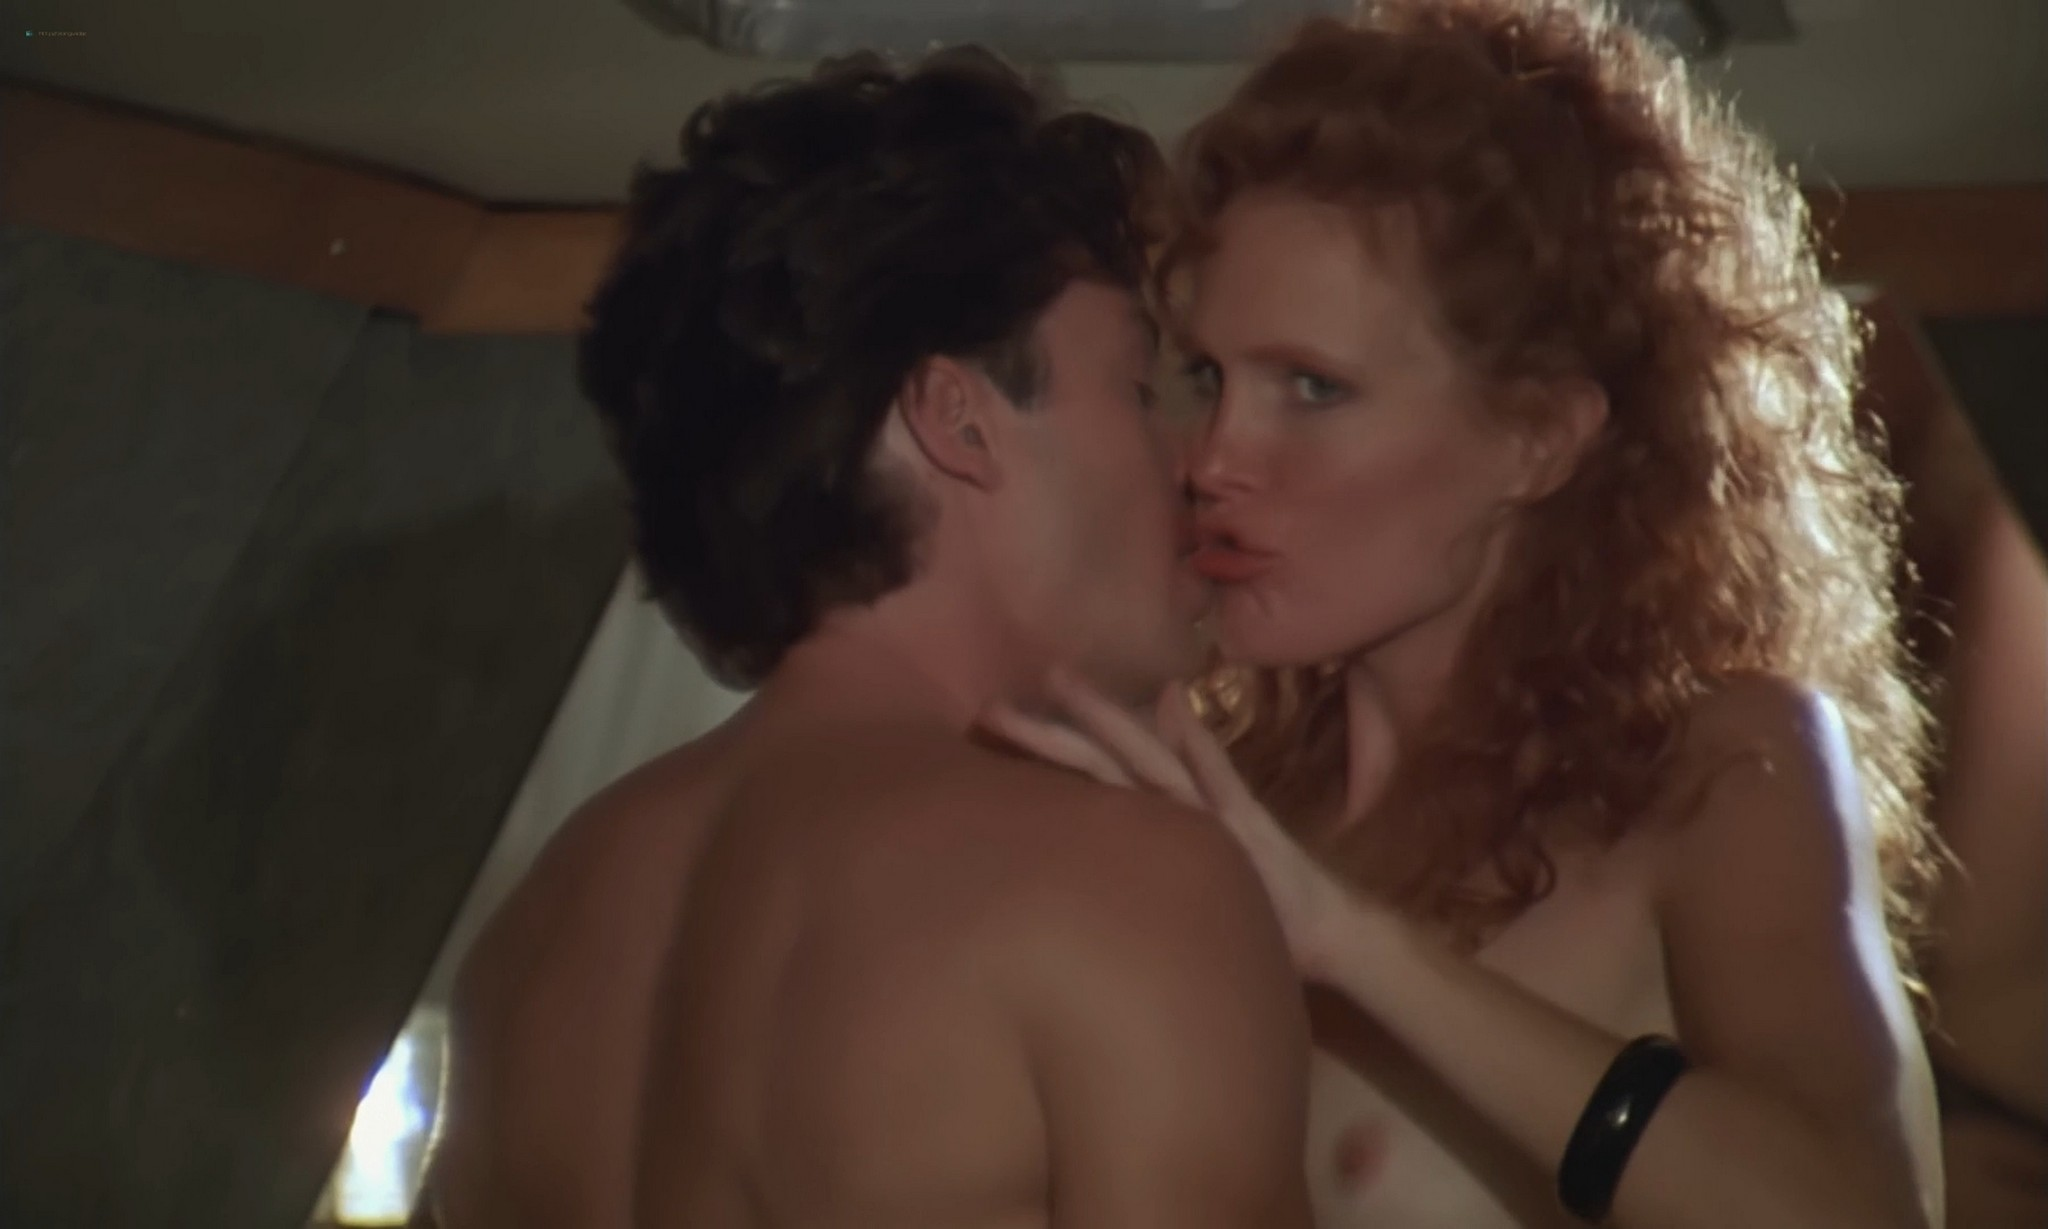 Victoria Prouty nude and sex in the shower American Rickshaw 1989 1080p BluRay 5